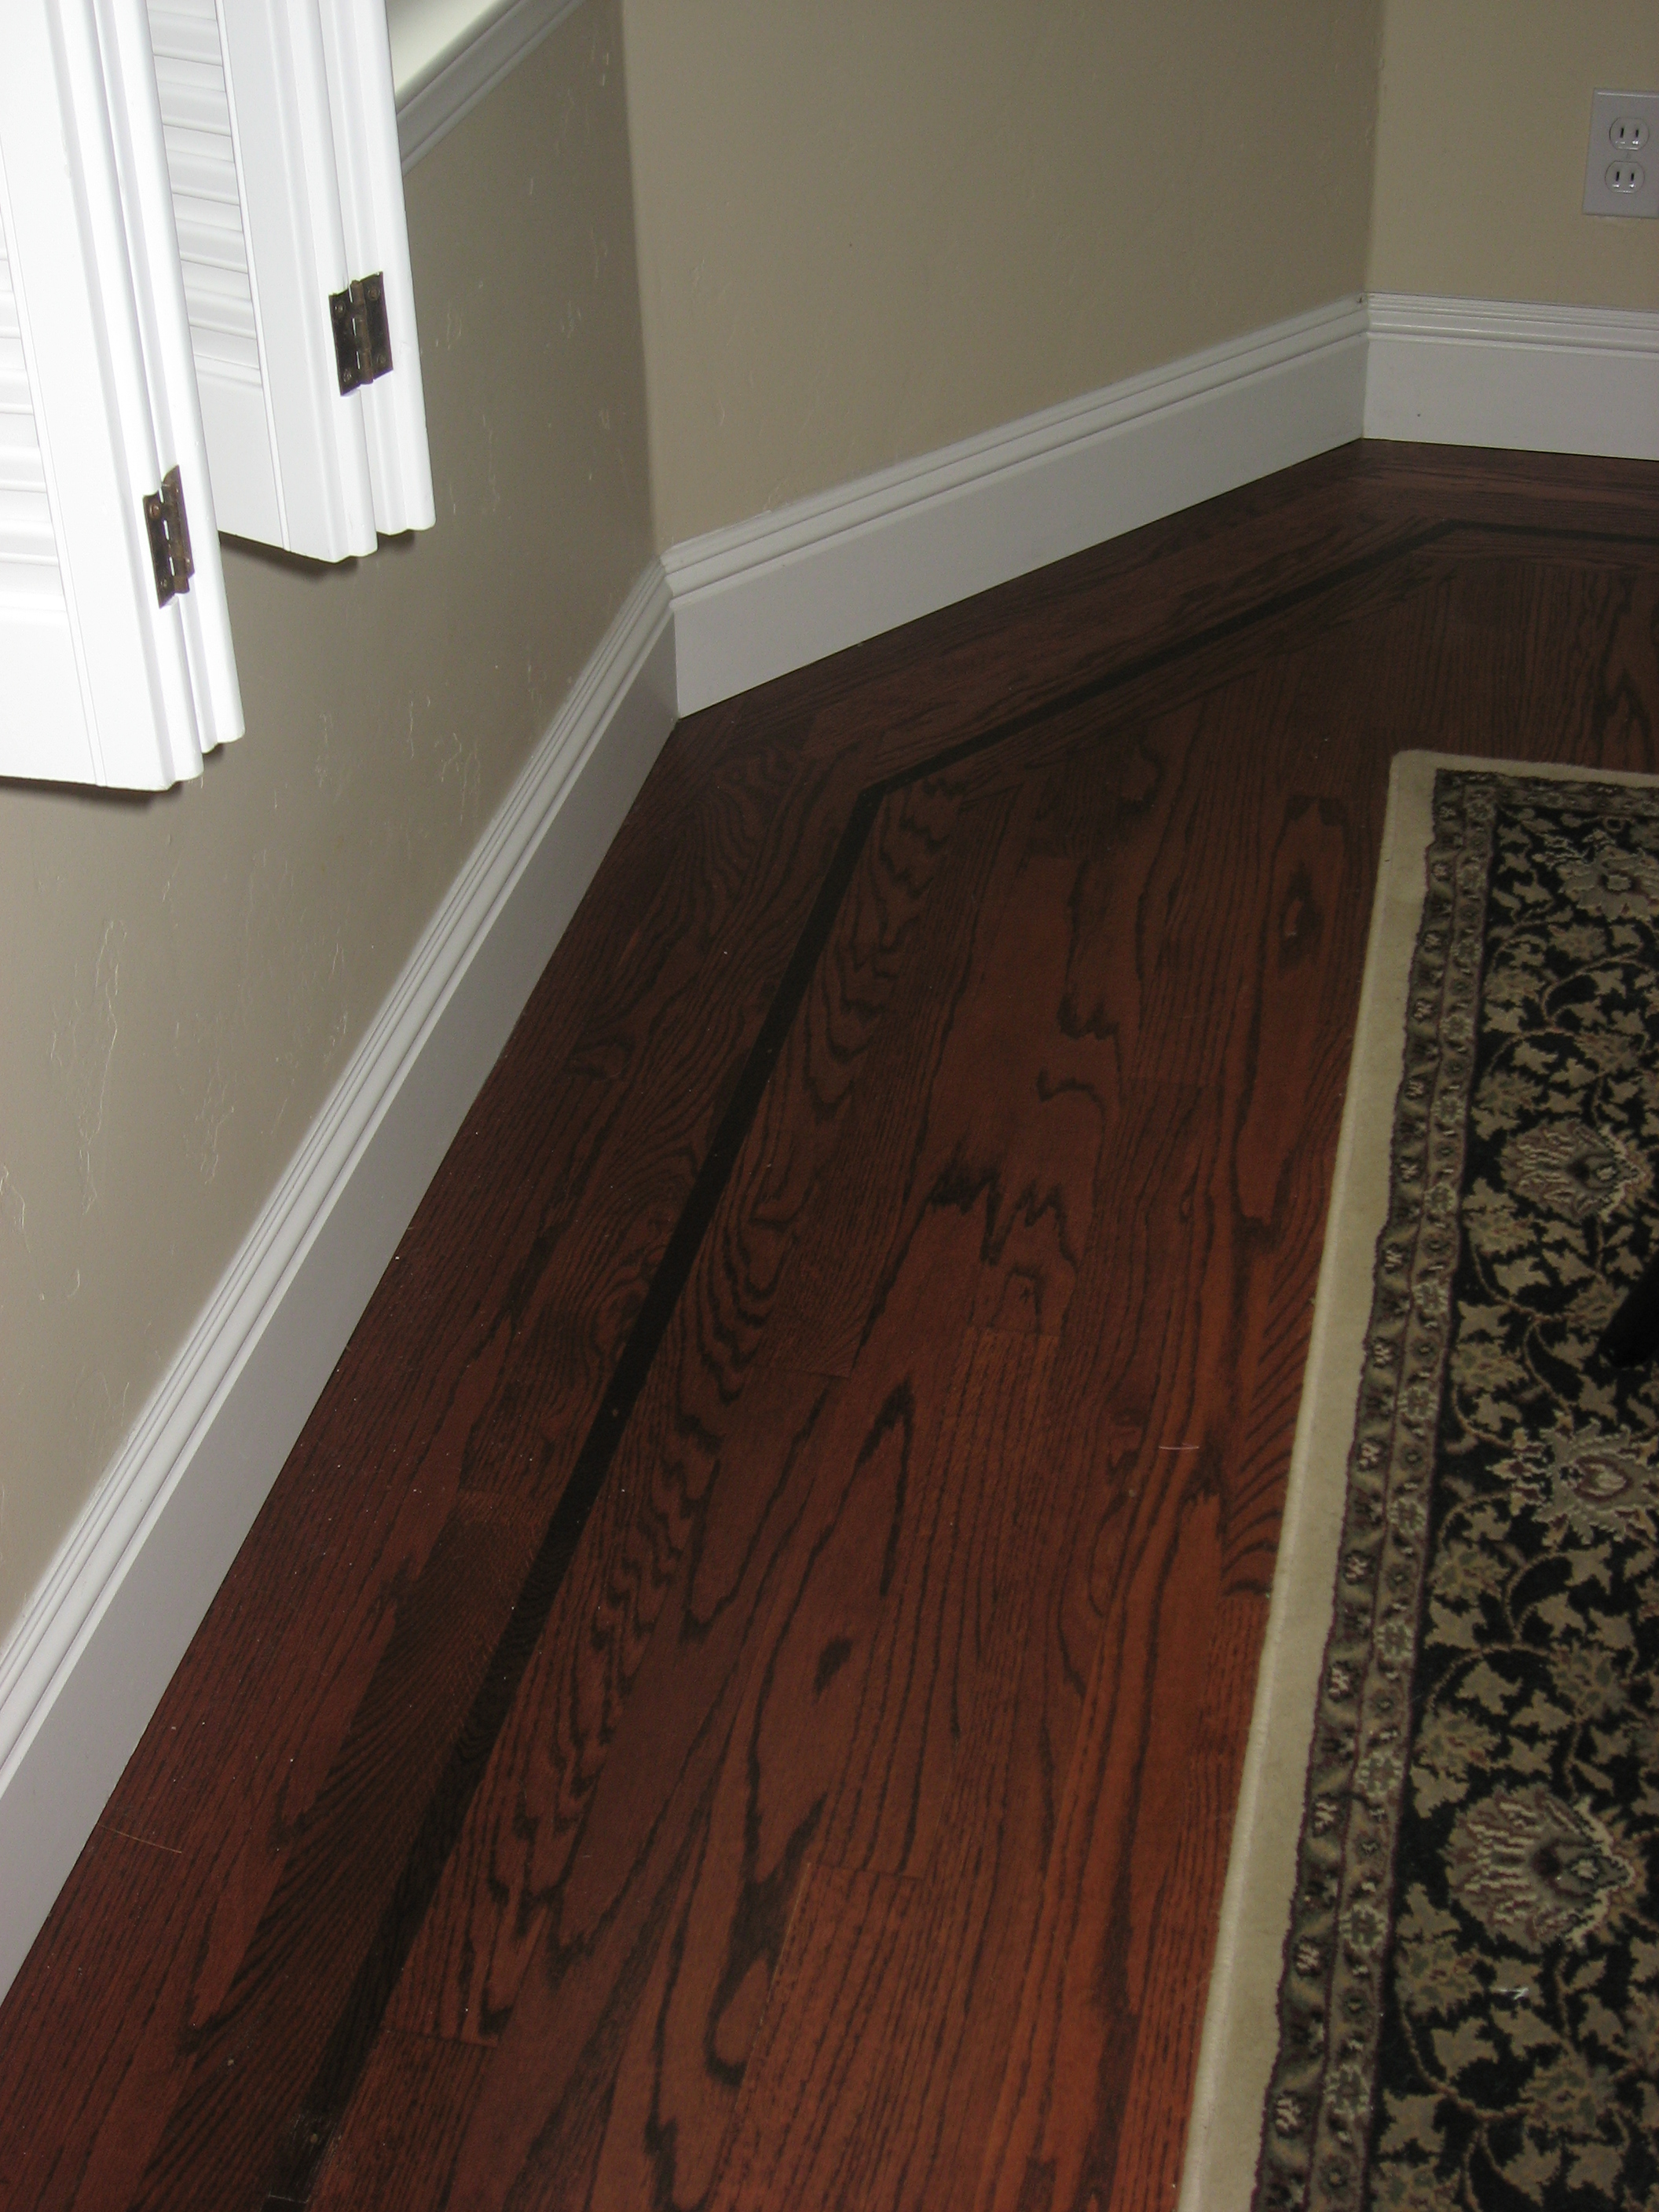 Visit Empire Floors Located In Santa Rosa Ca For All Your Floor Covering Needs